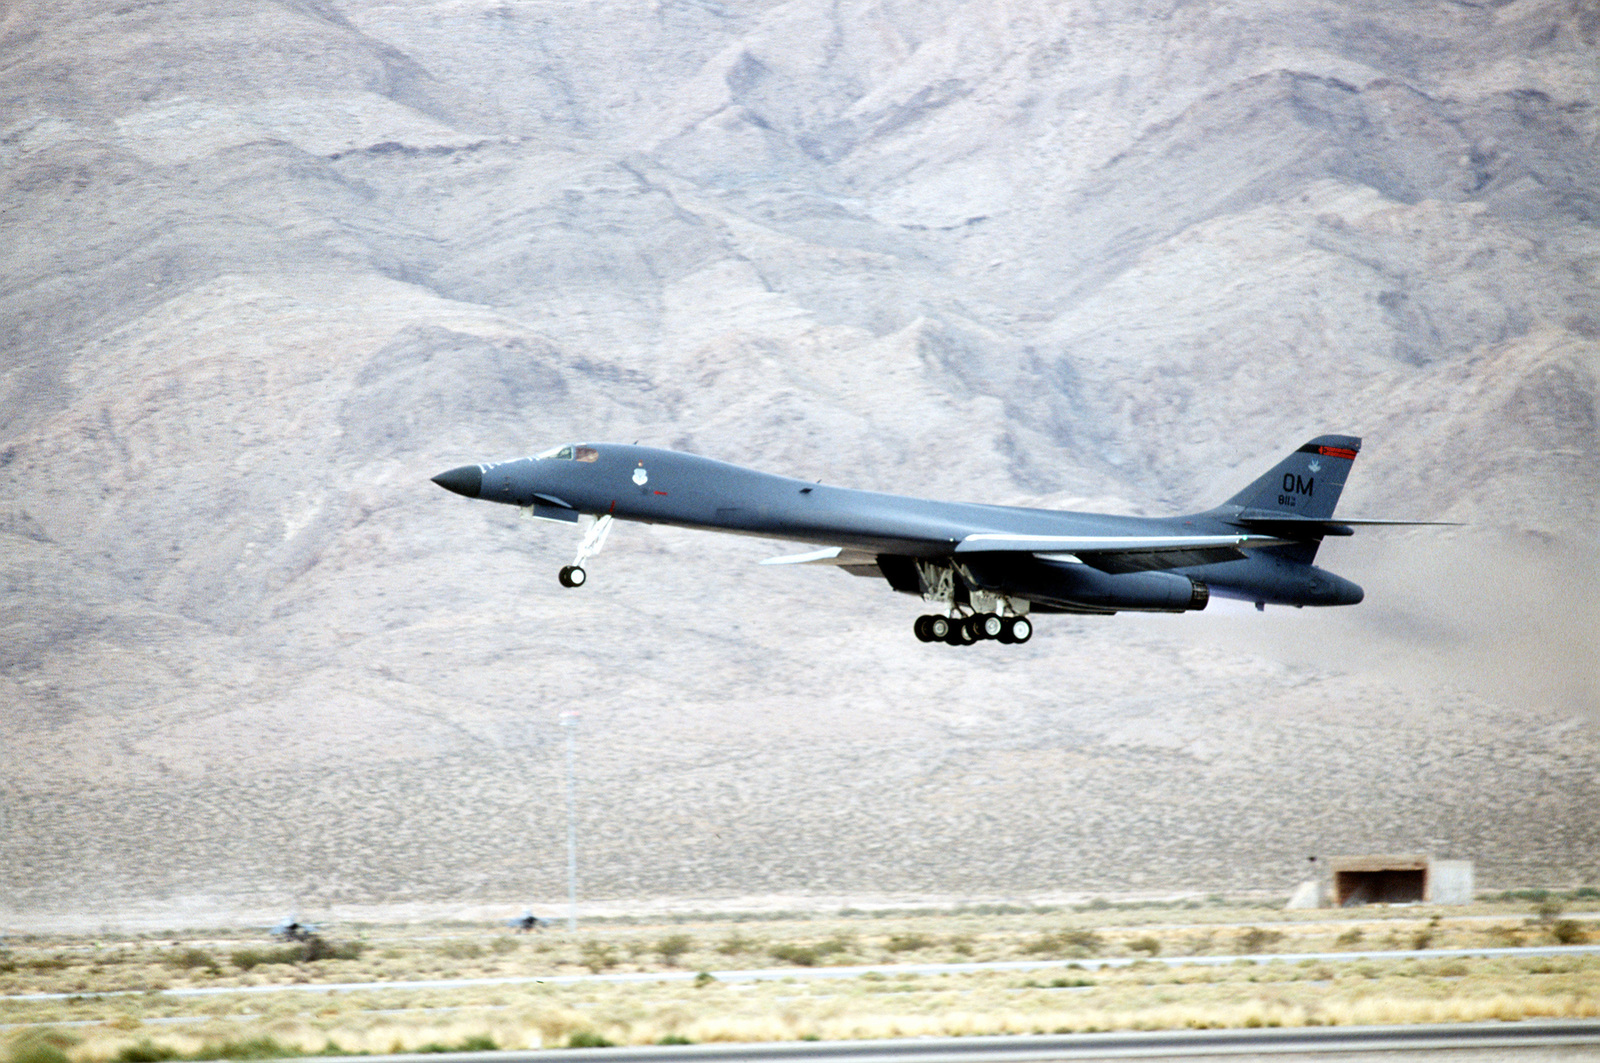 B-1B Lancer bomber from the 34th Bomb Squadron, 366th Wing, Ellsworth Air Force Base, South Dakota, takes off from this Nevada base during GUNSMOKE 95. Exact Date Shot Unknown